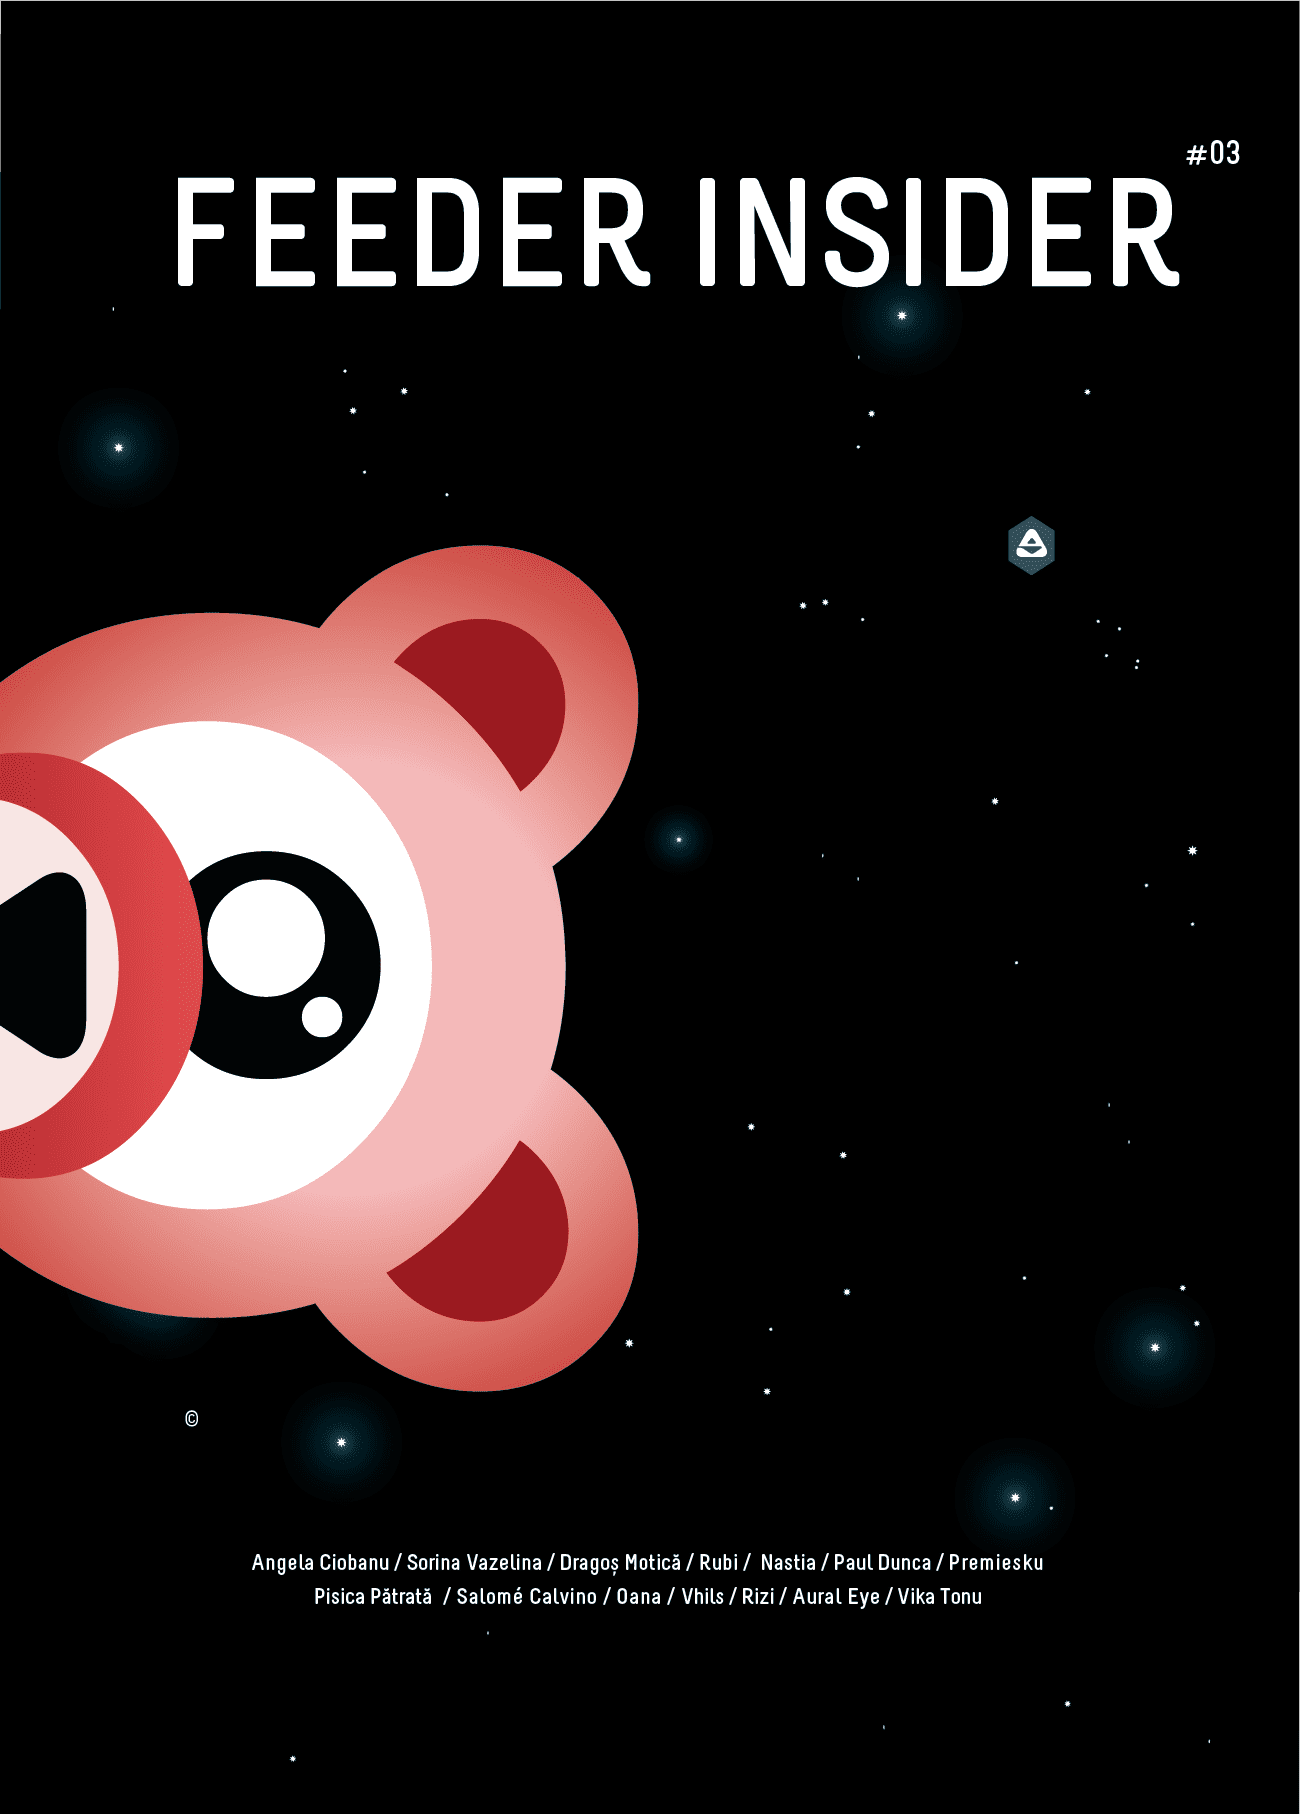 feeder insider e-book #03 cover